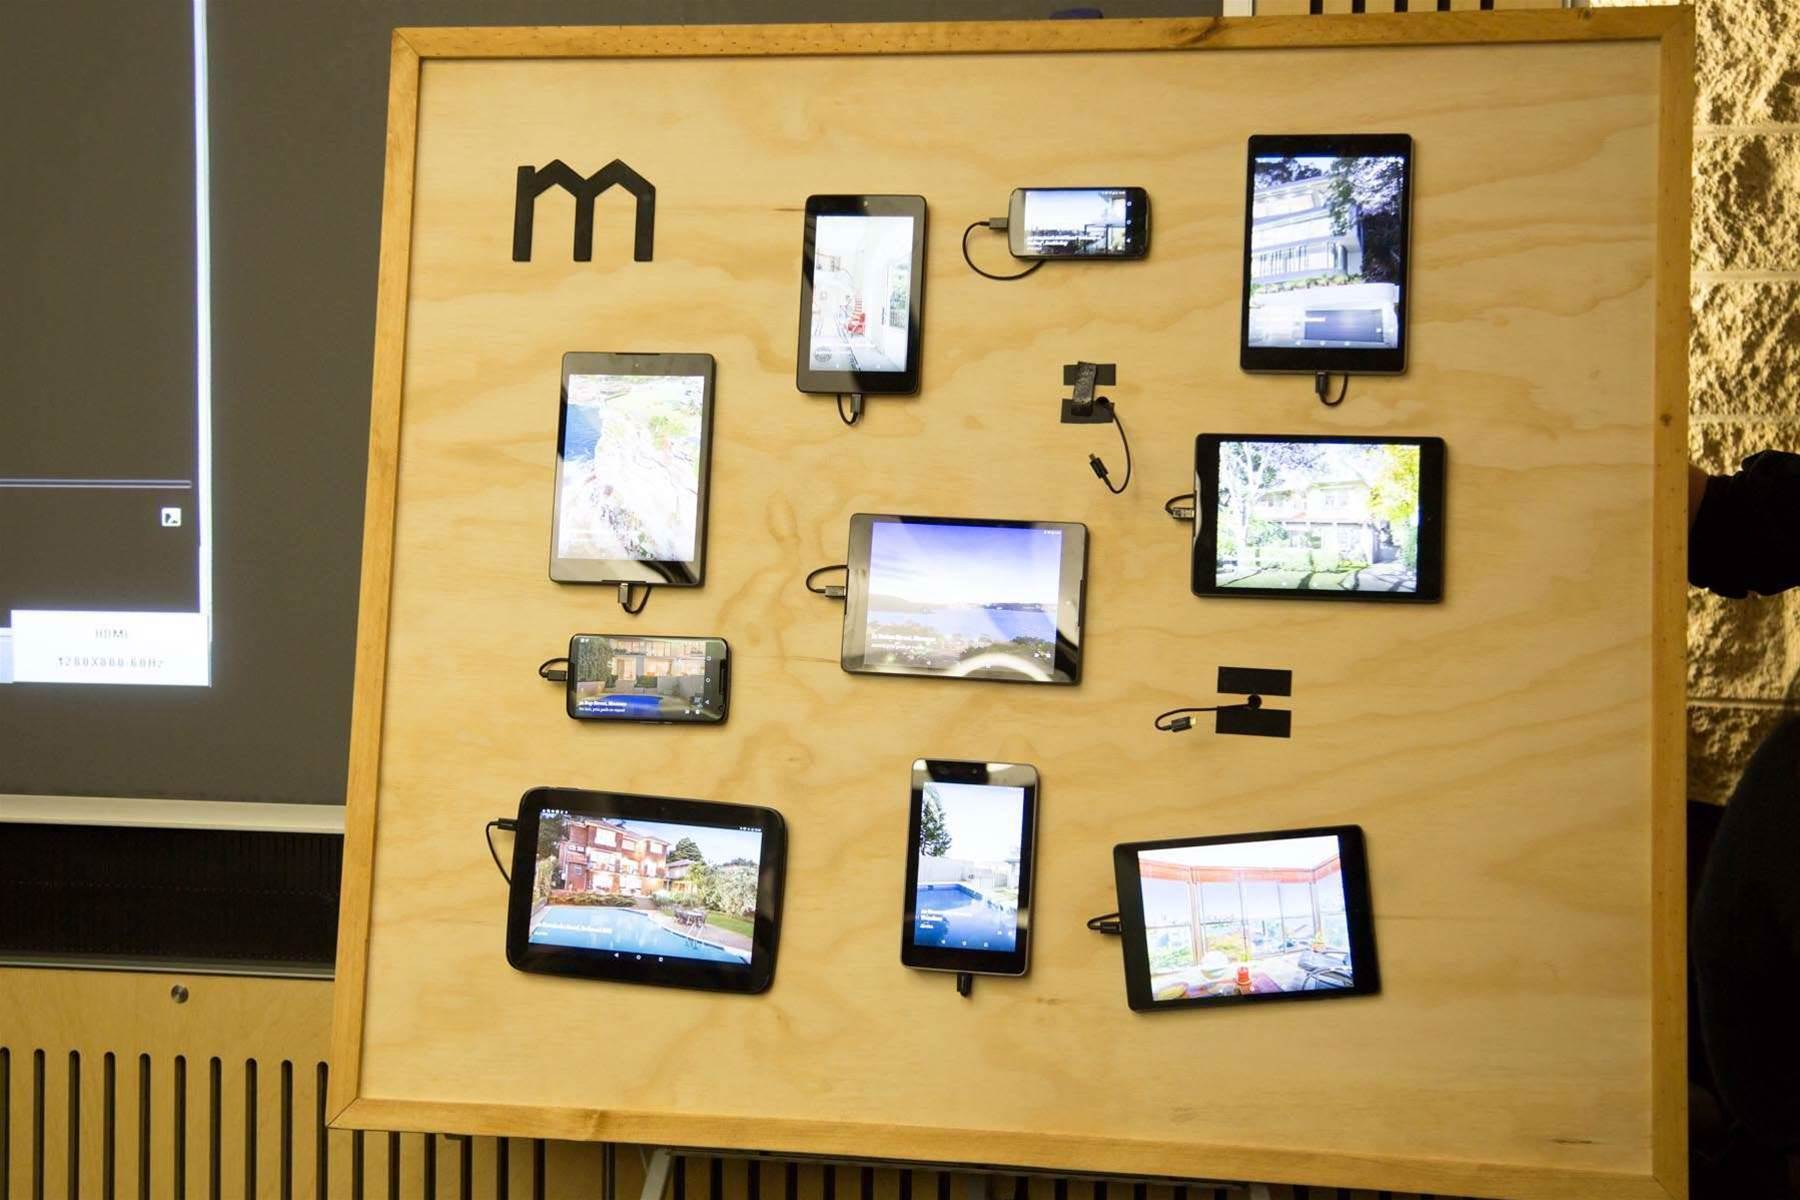 Photos: Domain's device wall